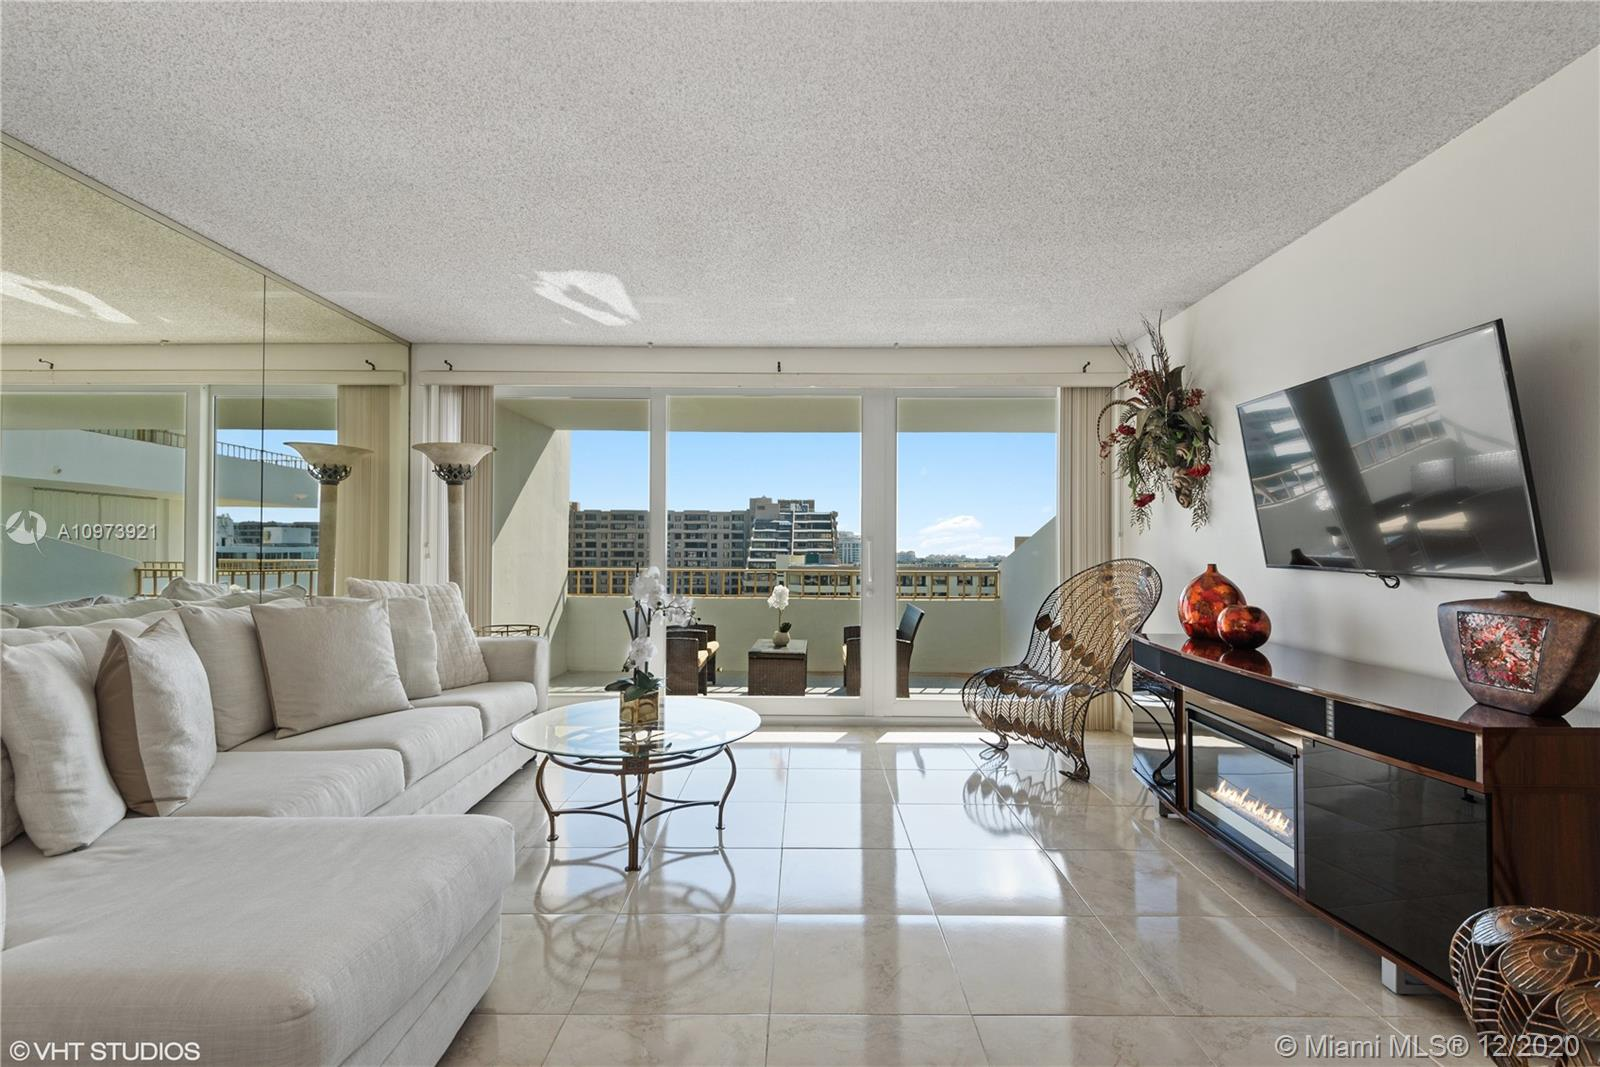 Commodore Club West #1011 - 155 Ocean Lane Dr #1011, Key Biscayne, FL 33149